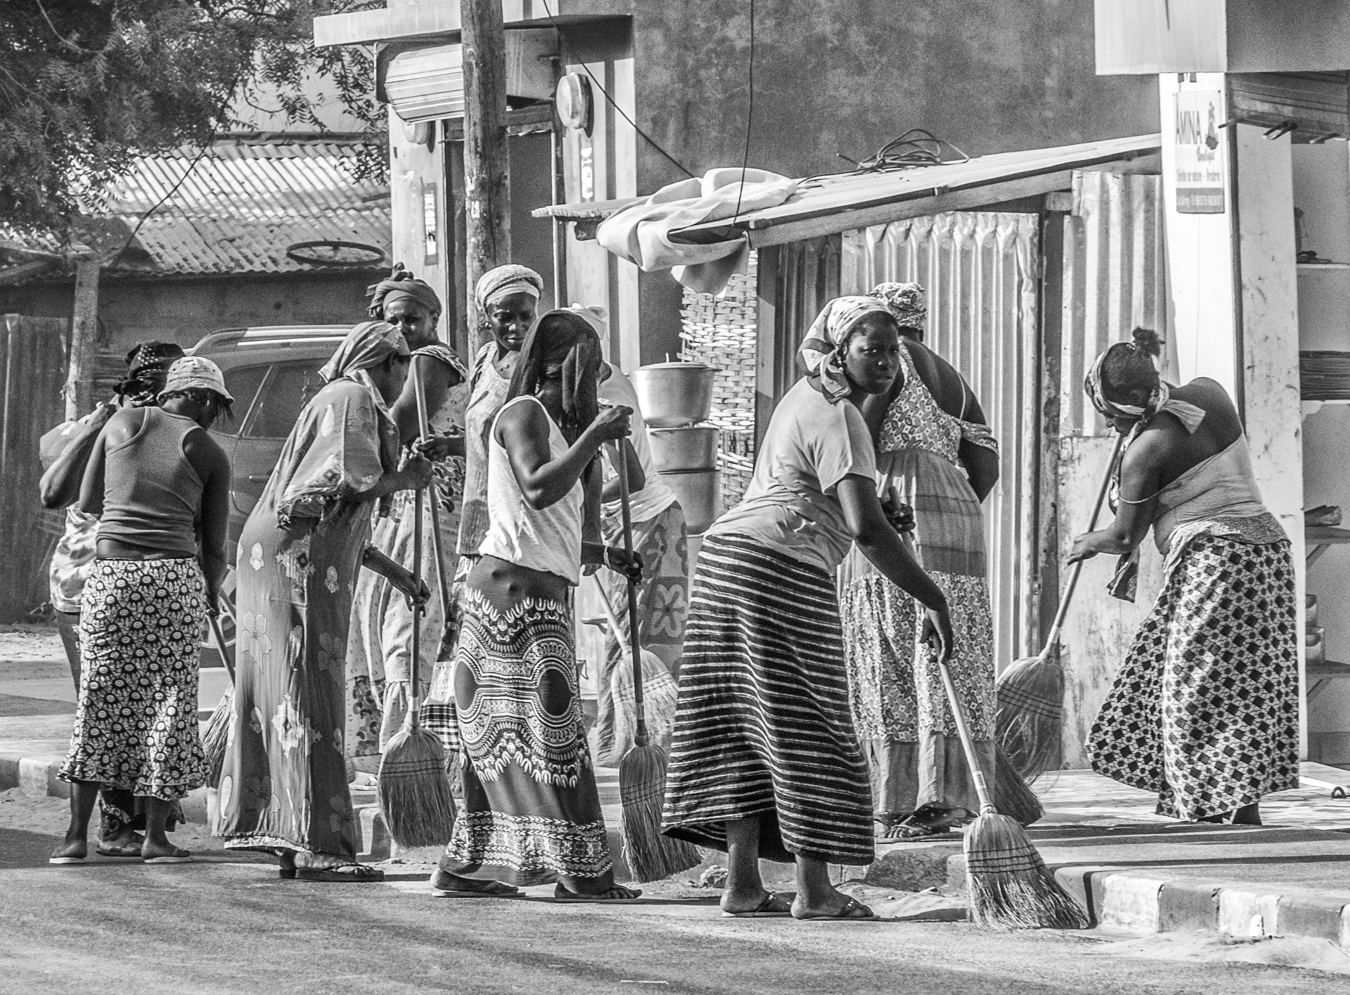 Clean Sweep, Cape Skirring, 2016   It was the start of the tourist season and the women of the community all joined together to sweep the streets in preparation for the onslaught of tourists. True community spirit, with an abundance of brooms.